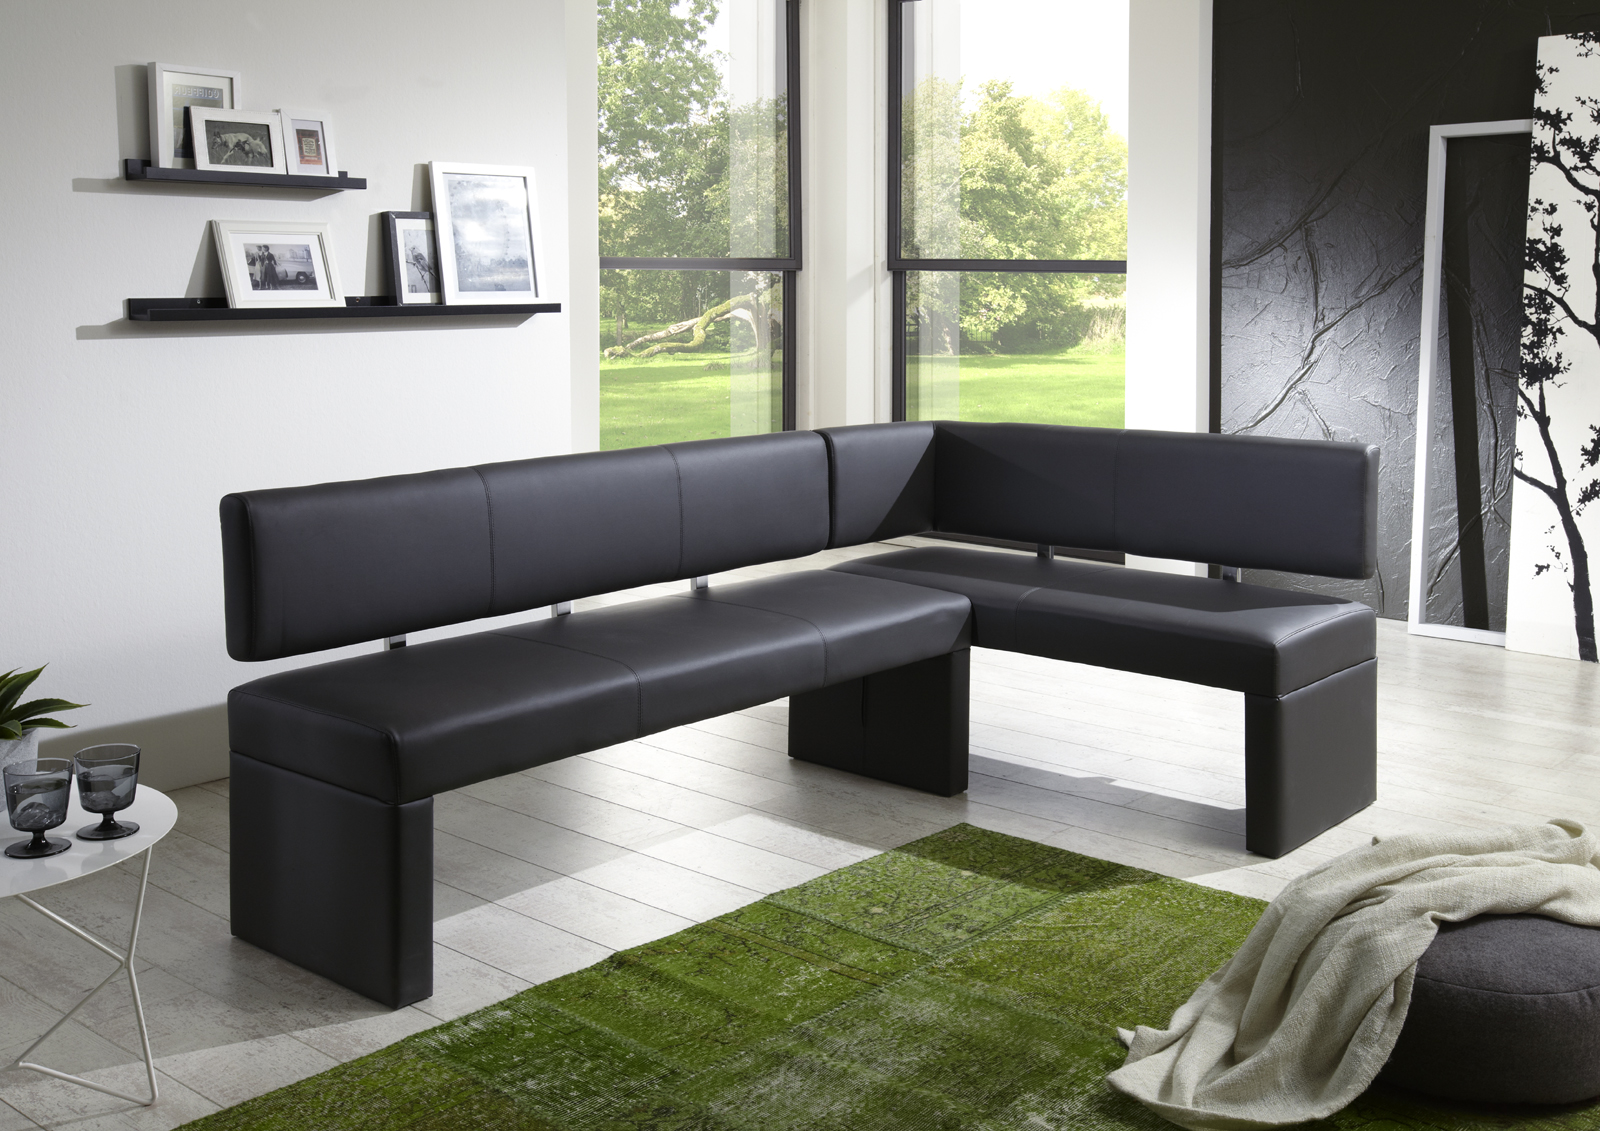 sam eckbank recyceltes leder hellgrau cm x 150 cm lasilas. Black Bedroom Furniture Sets. Home Design Ideas